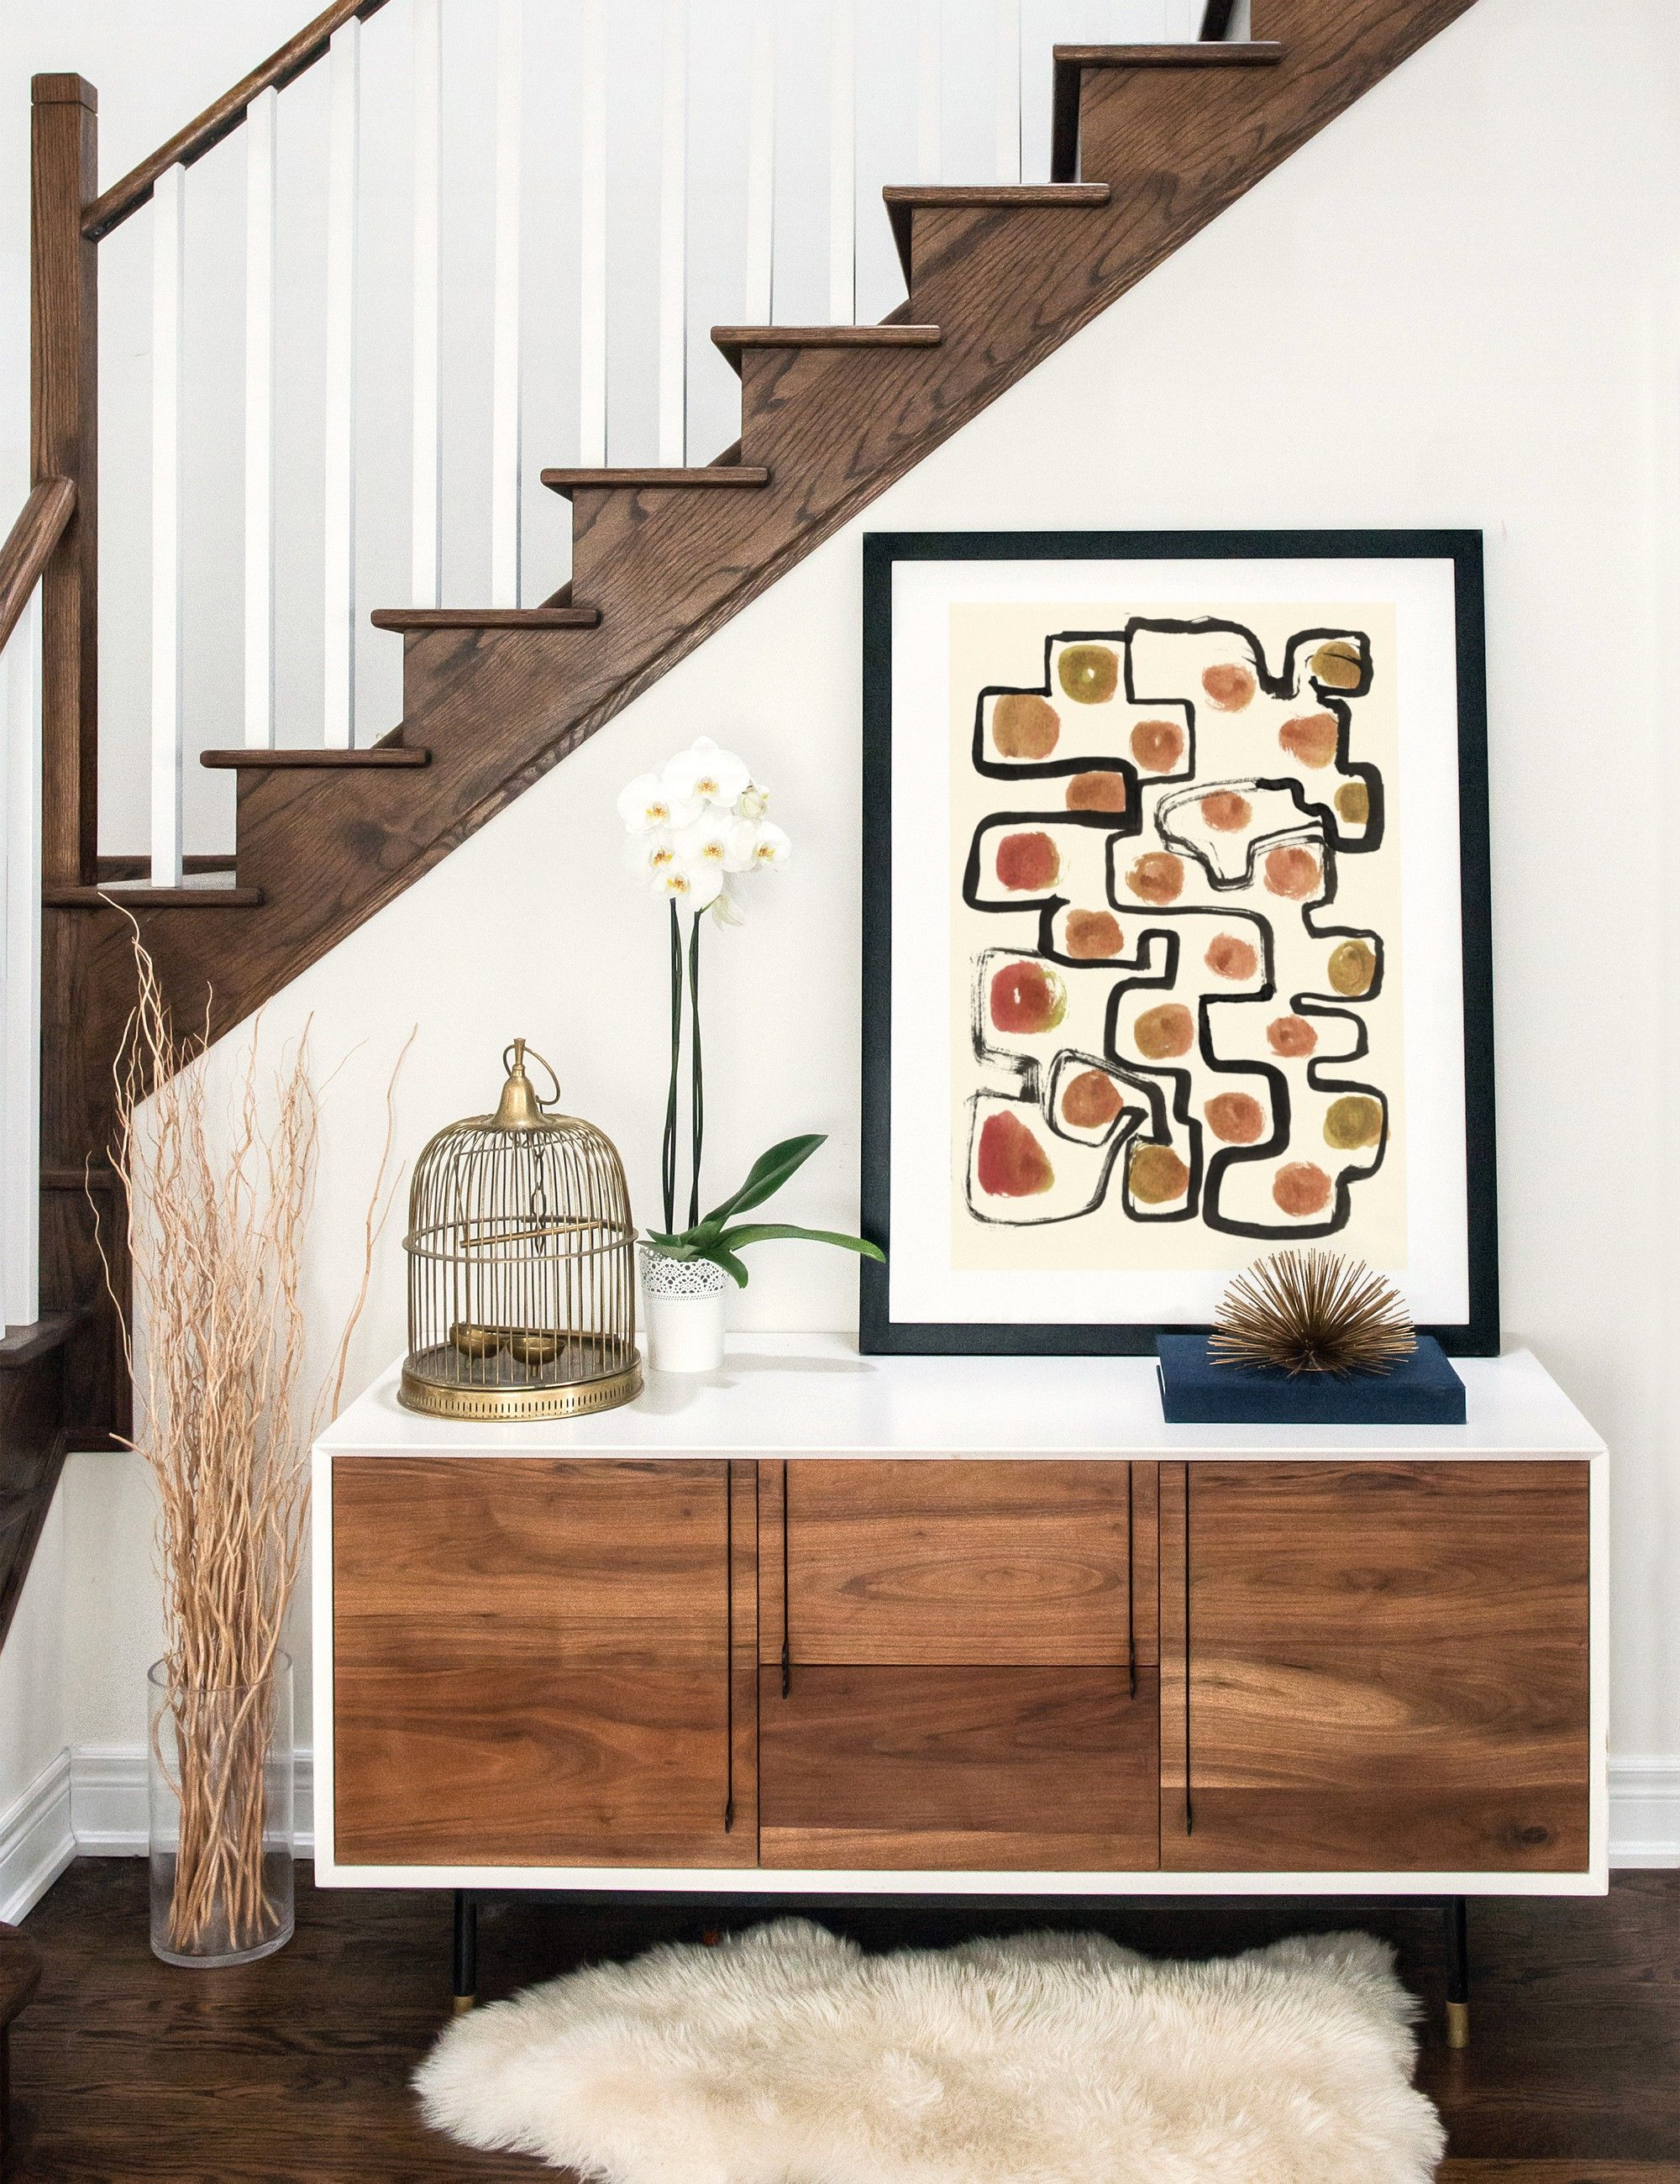 Entry way home decor inspiration. Cozy, warm colors and abstract art ...